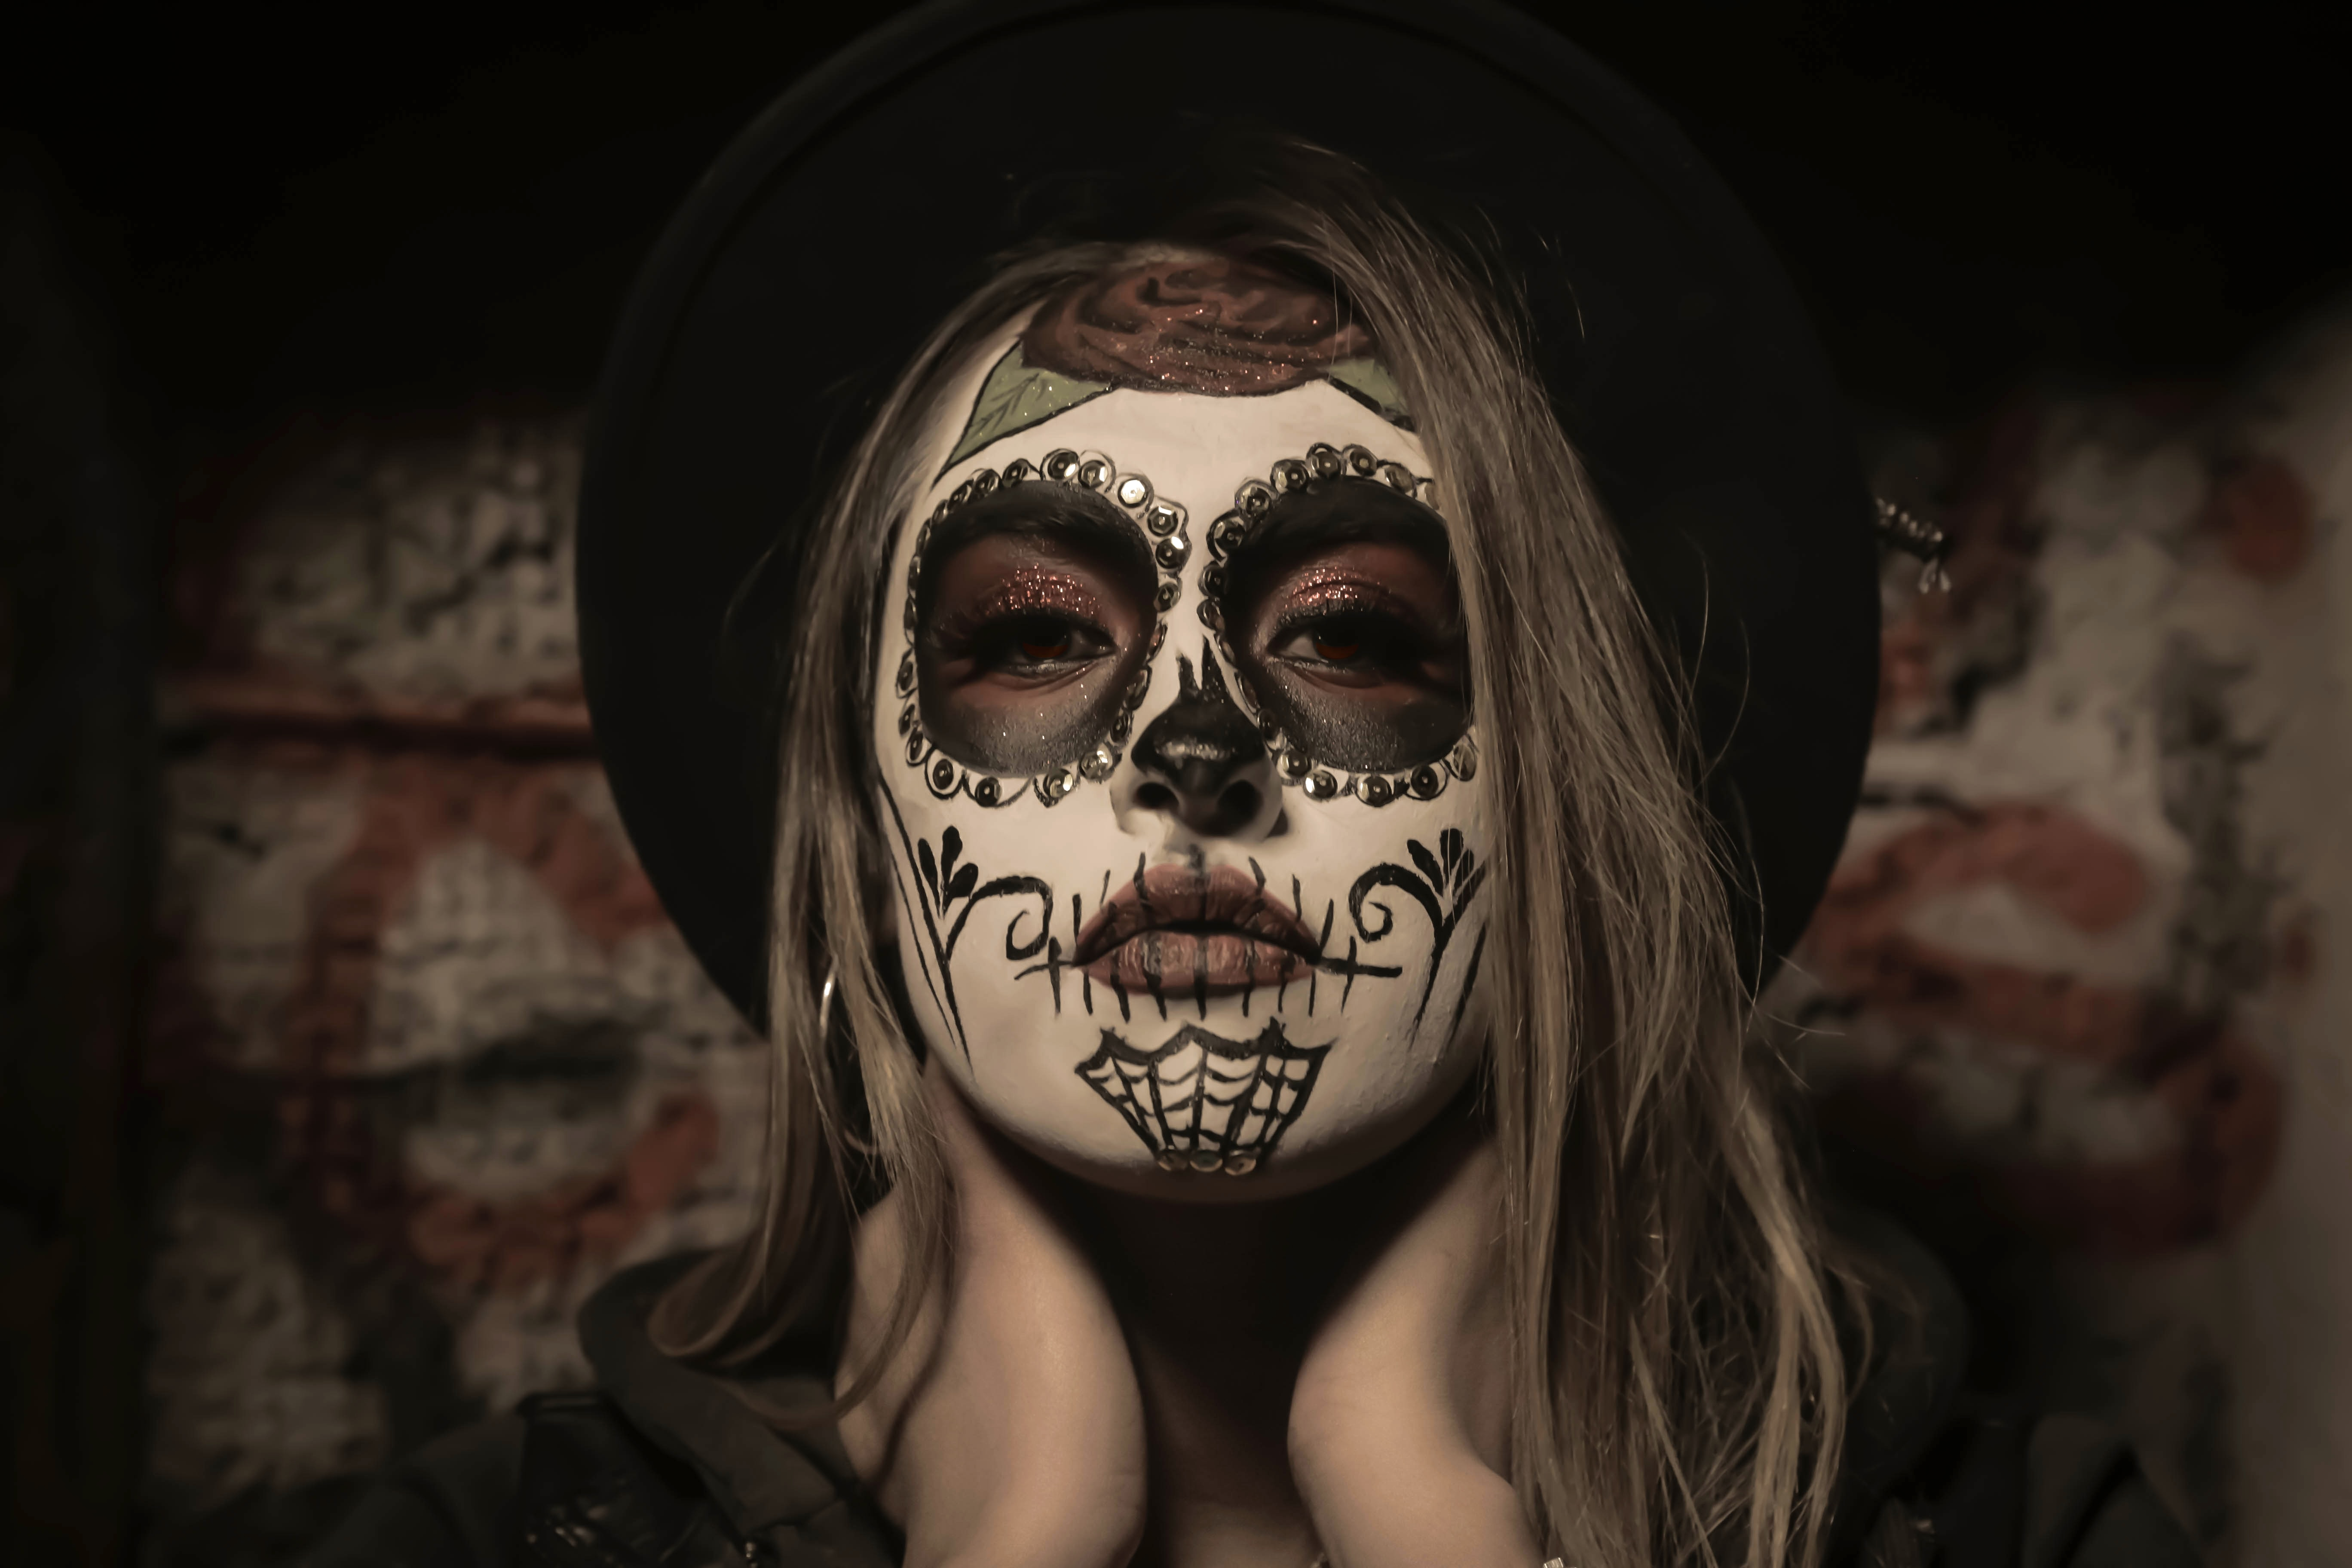 Calaveras Make-up/ Sugar Skull Make-up/ Mexican Skull Make-up/ Dia de los Muertos Make-up